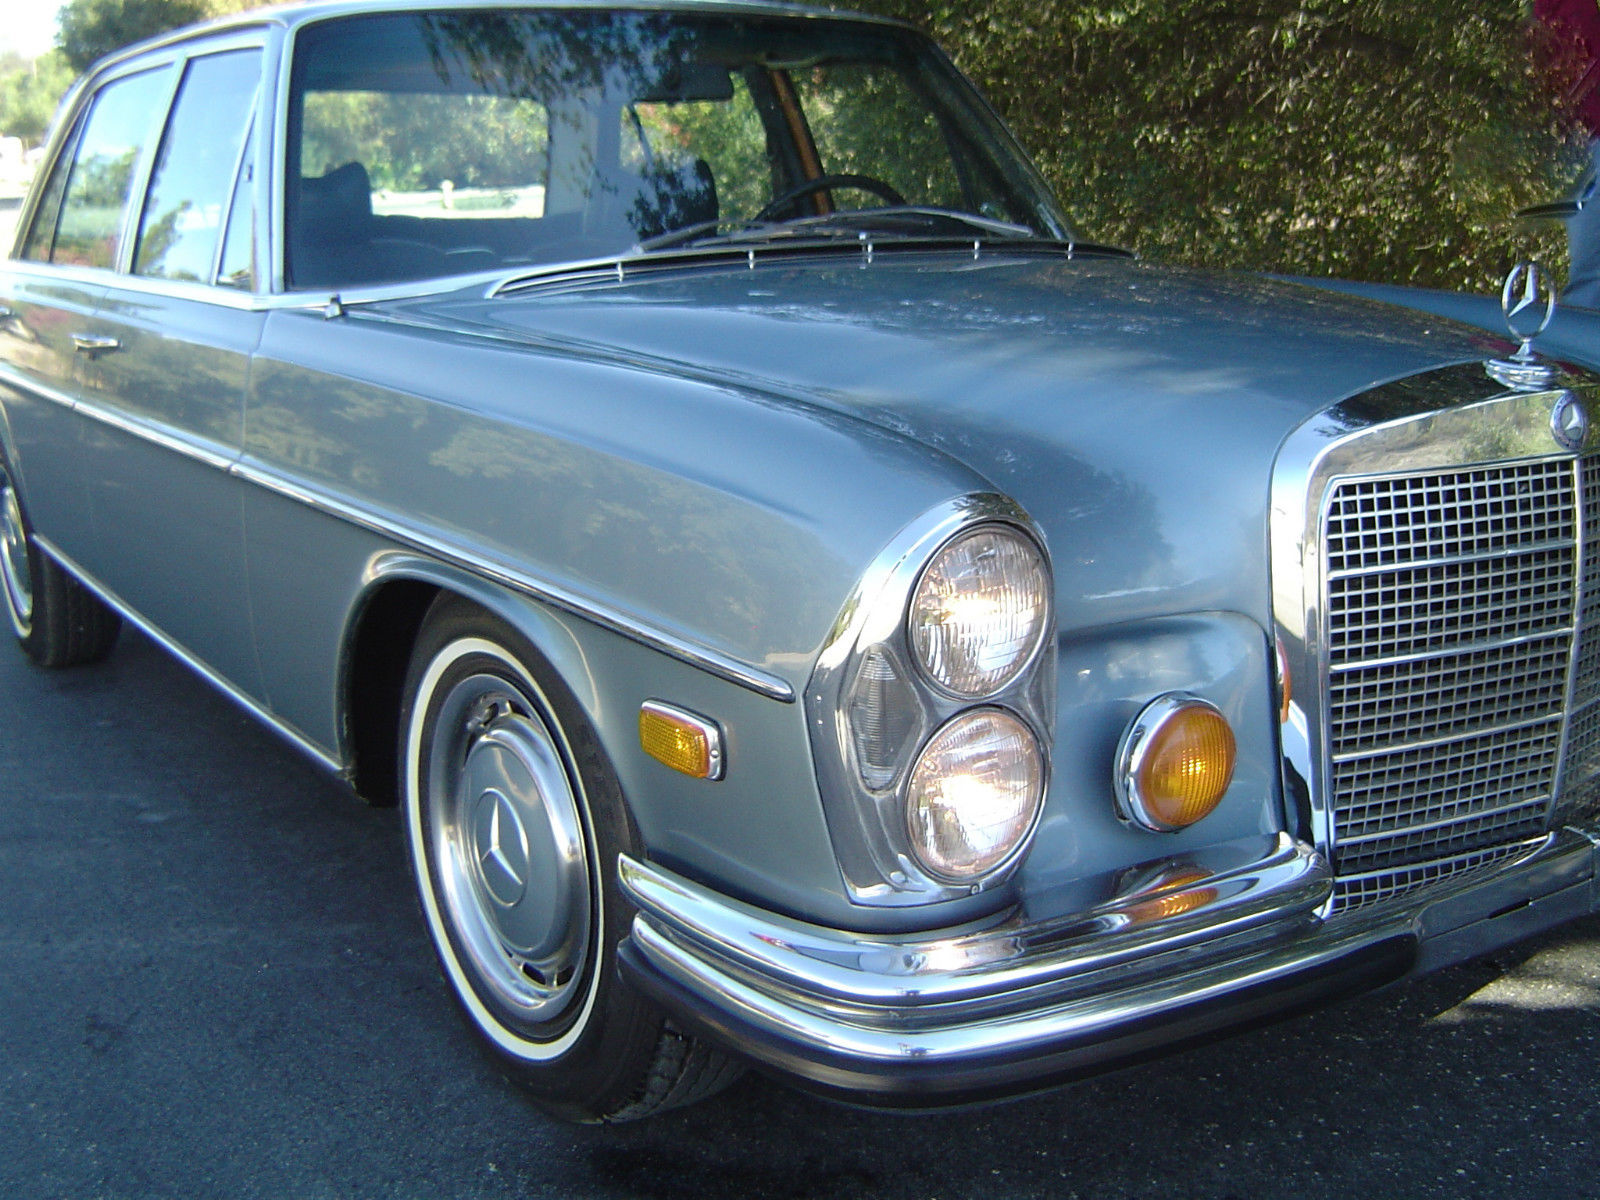 1972 mercedes benz 300 sel 4 5 w109 classic mercedes benz 300 series 1972 for sale. Black Bedroom Furniture Sets. Home Design Ideas